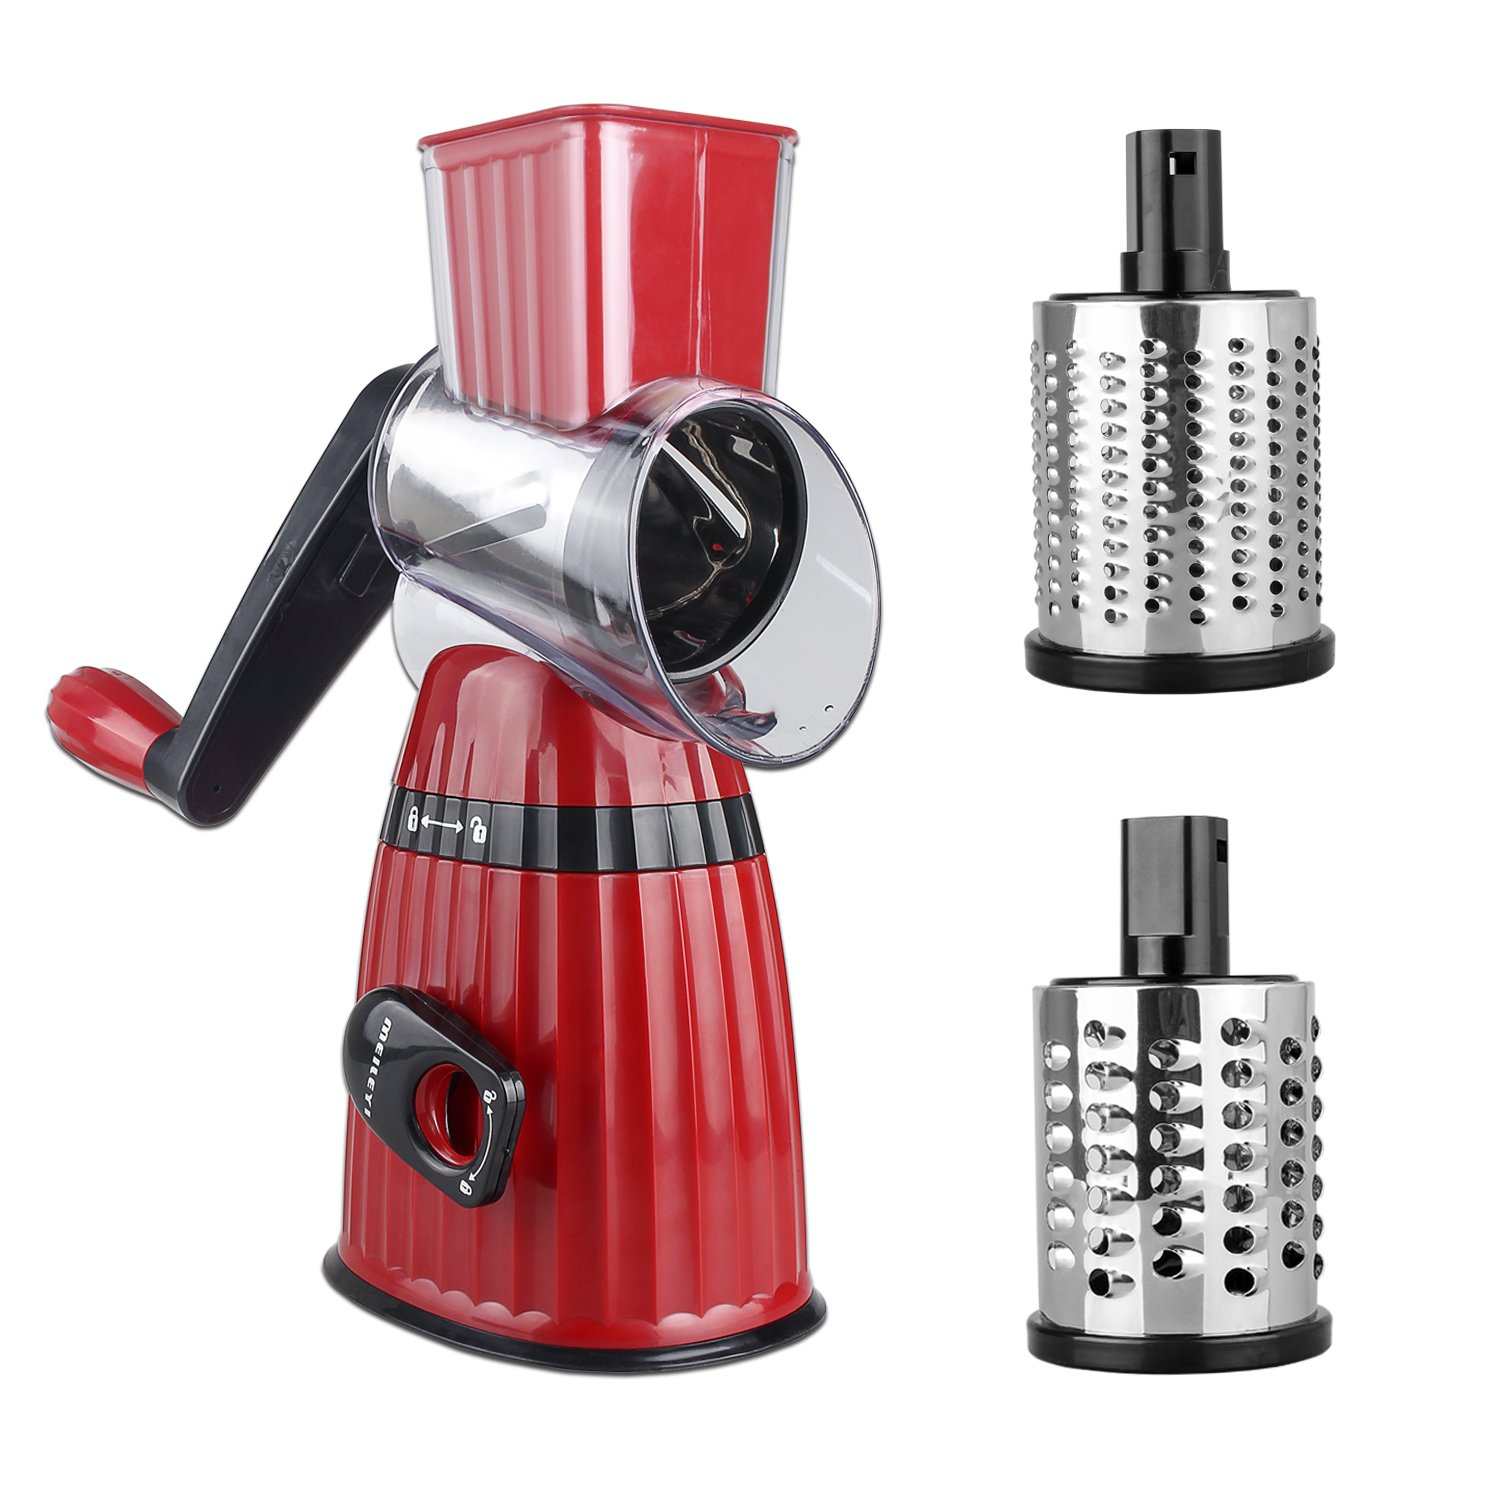 Vegetable Cheese Cutter Cylindrical Multi-function Shredder Mandoline Three-in-one Hand-operated Slicer(Red)